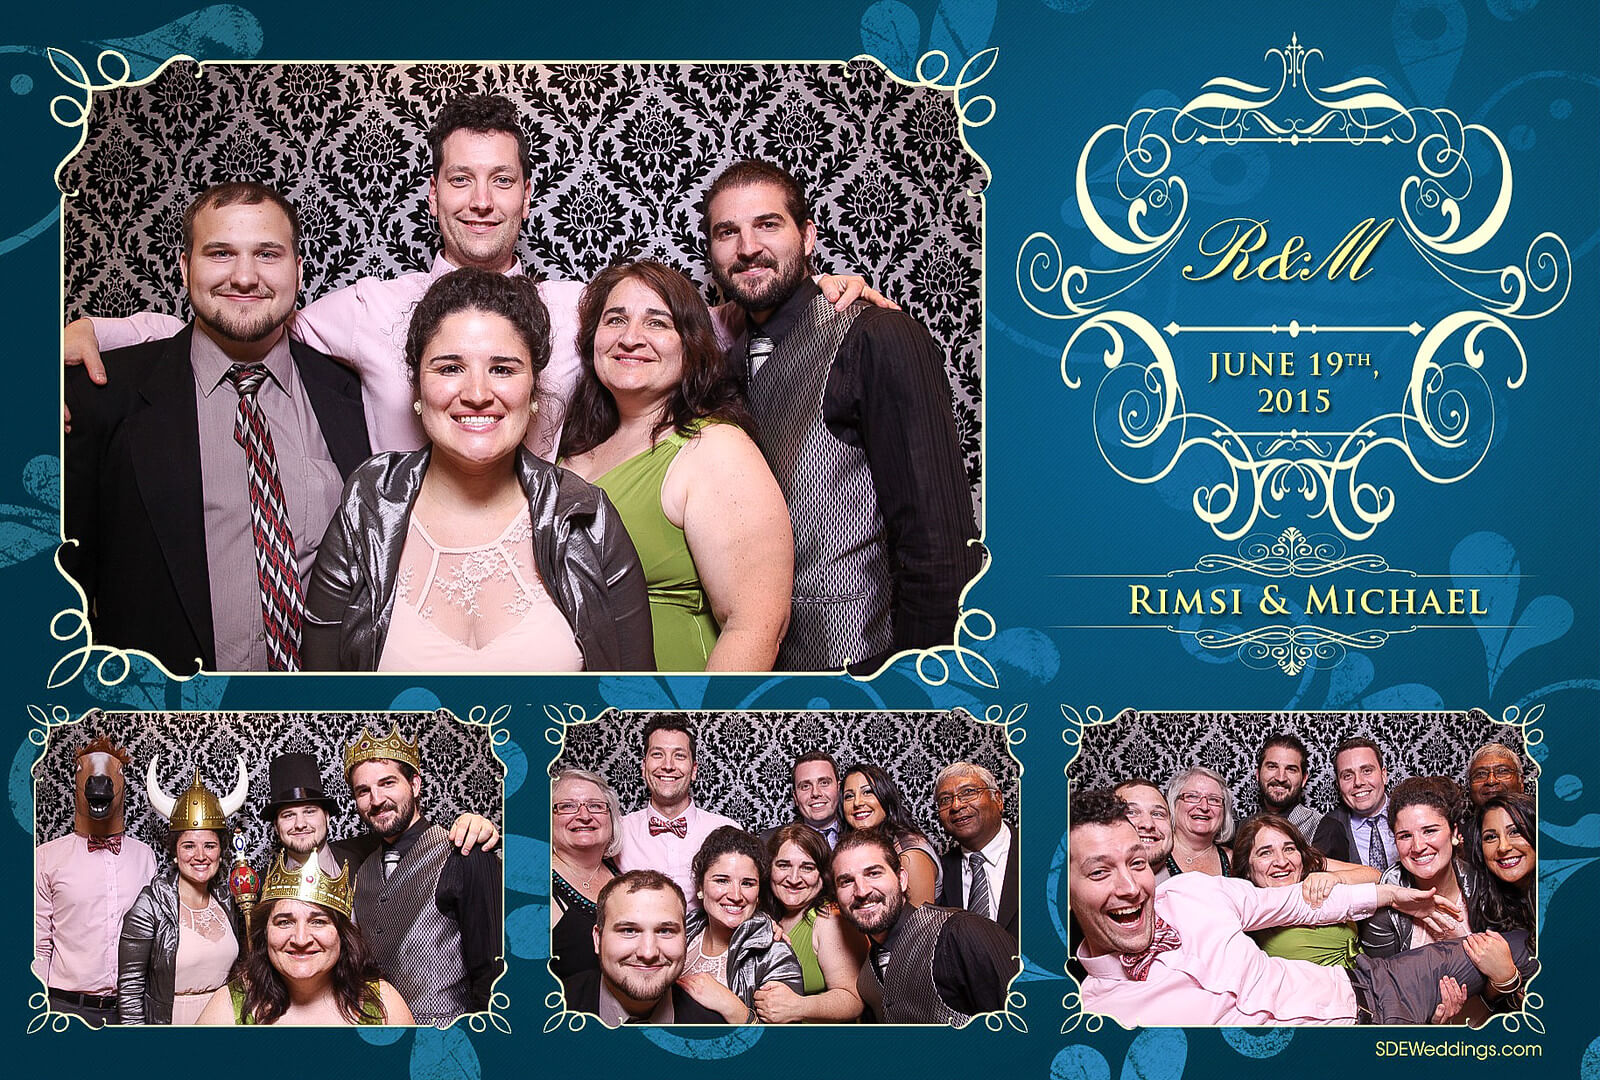 Toronto Italian Borgata Wedding Photo Booth Rental 10